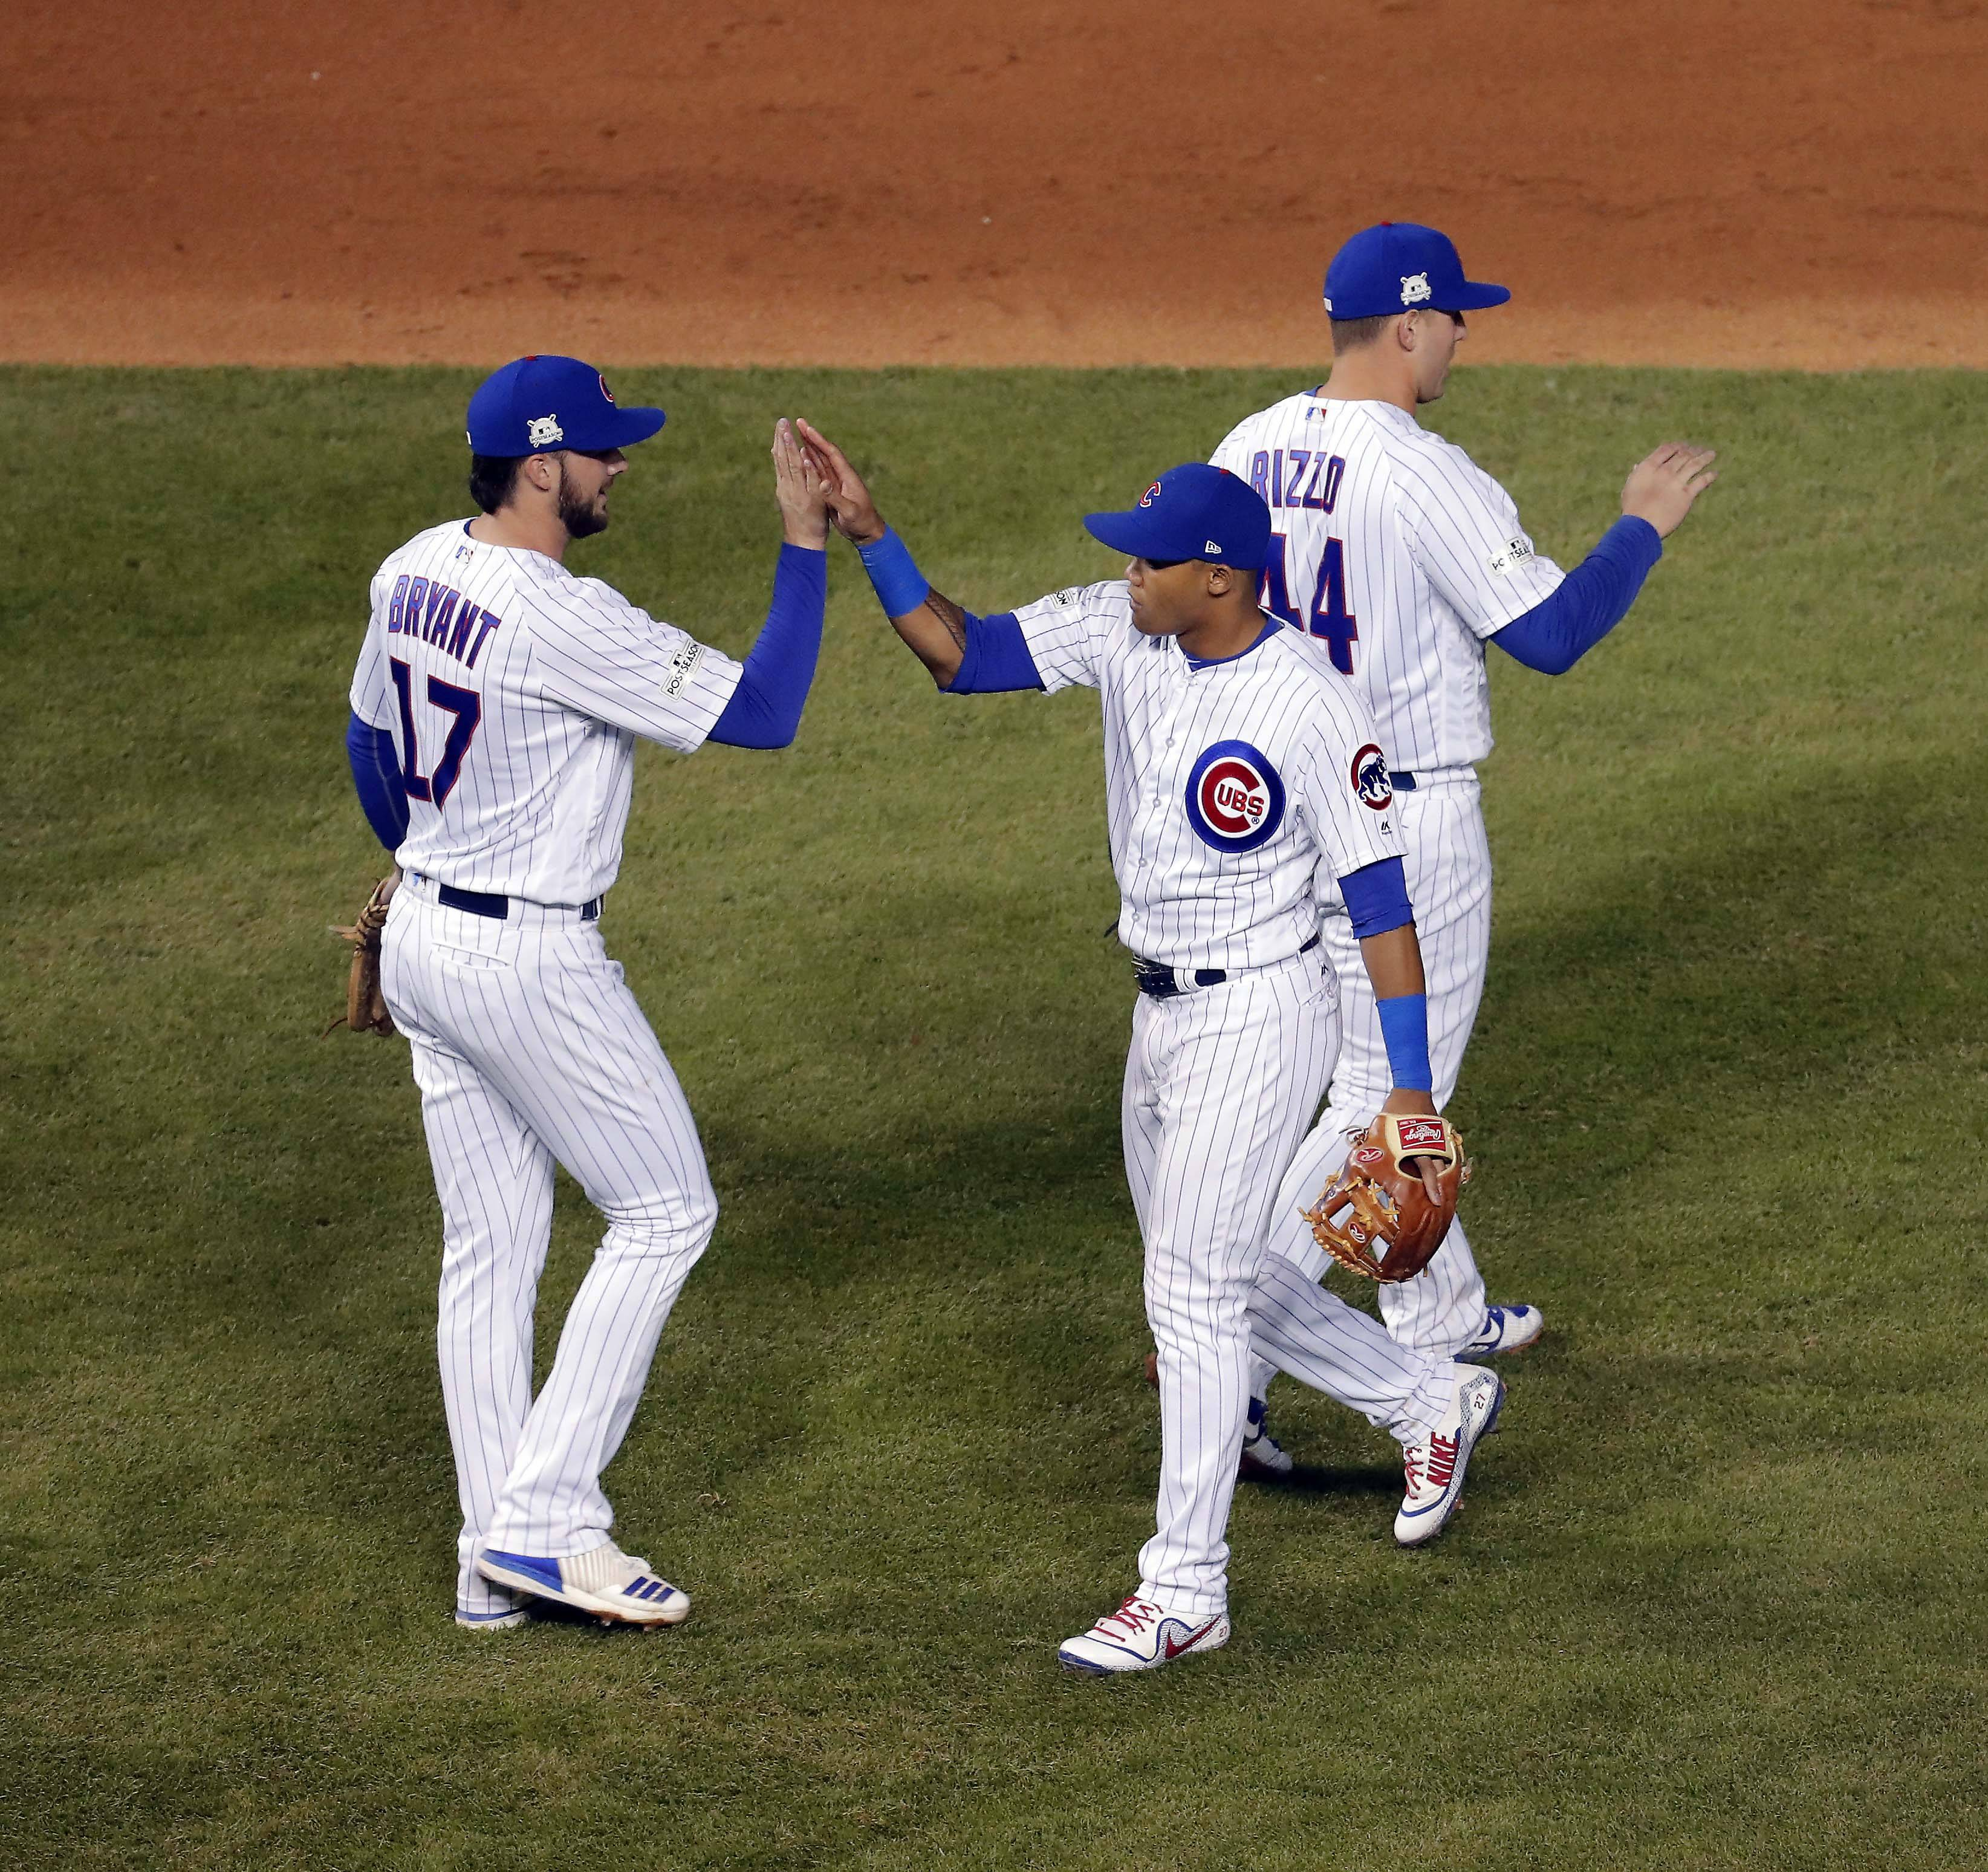 Chicago Cubs third baseman Kris Bryant (17), shortstop Addison Russell (27) and first baseman Anthony Rizzo (44) celebrate their win of Game 4 of the National League championship series, Oct, 18 2017, at Wrigley Field in Chicago.